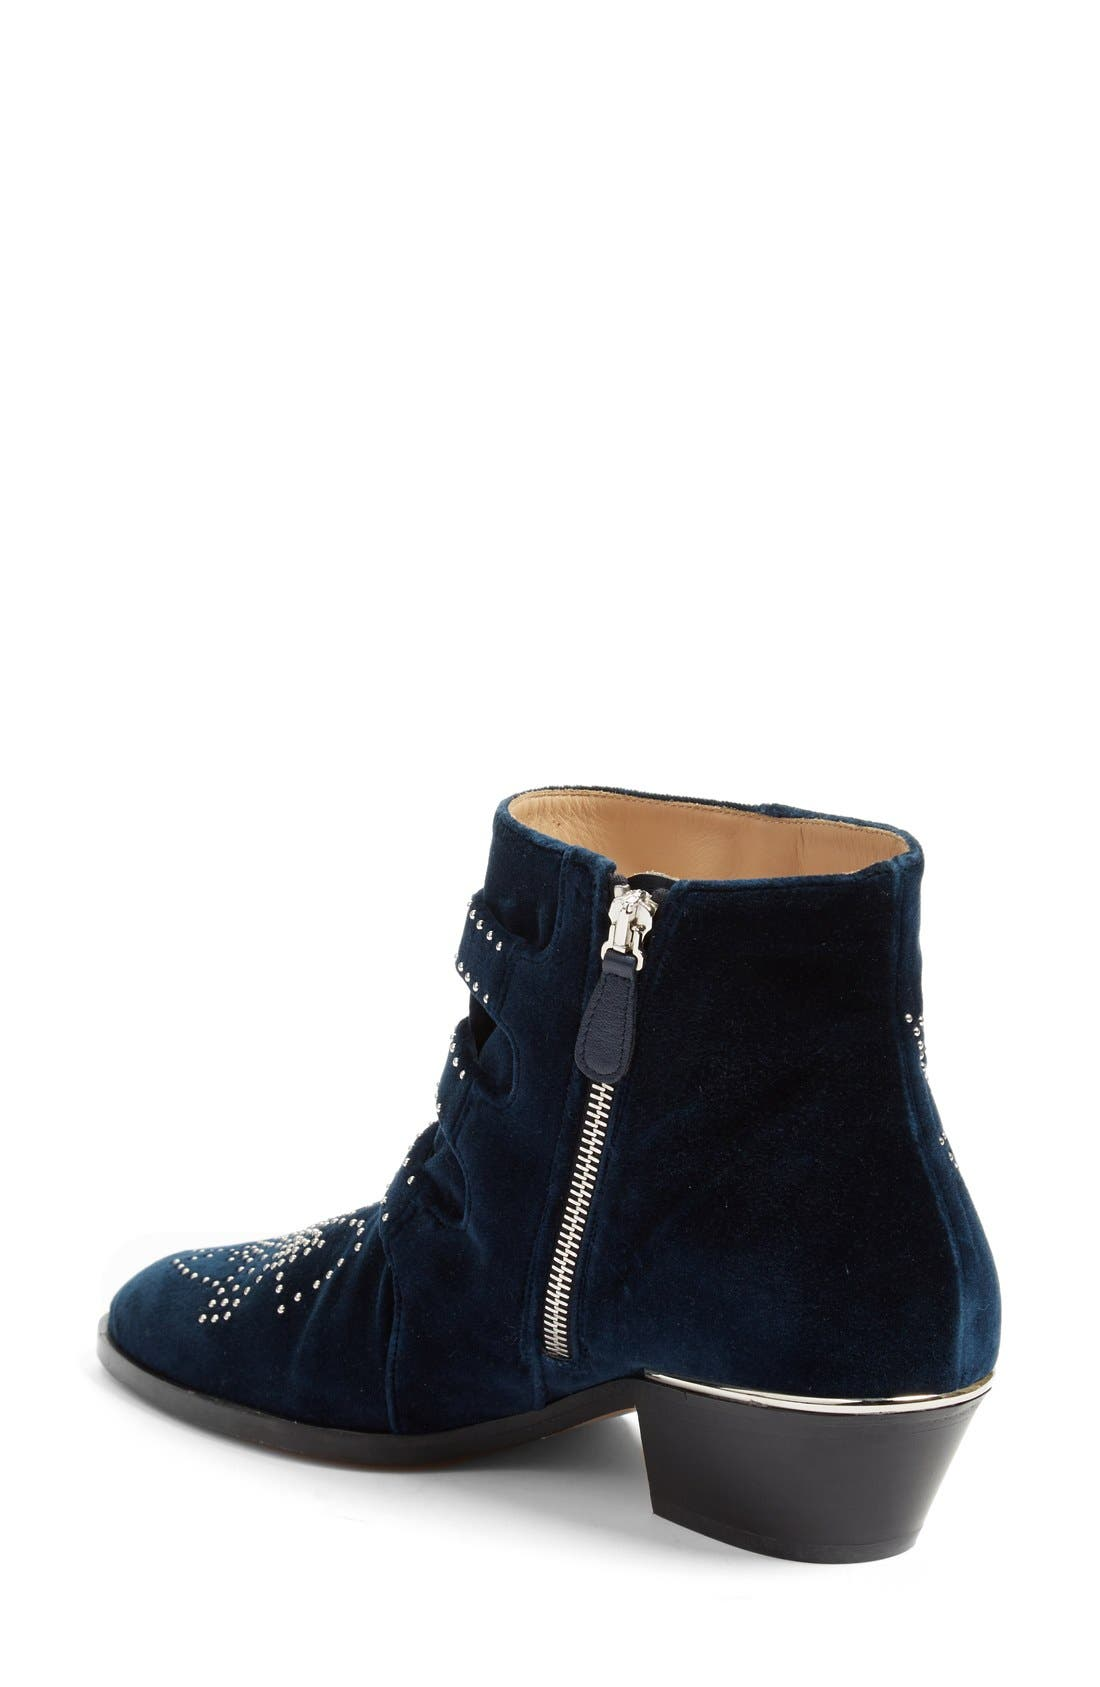 Alternate Image 2  - Chloé 'Susan' Studded Buckle Boot (Women)